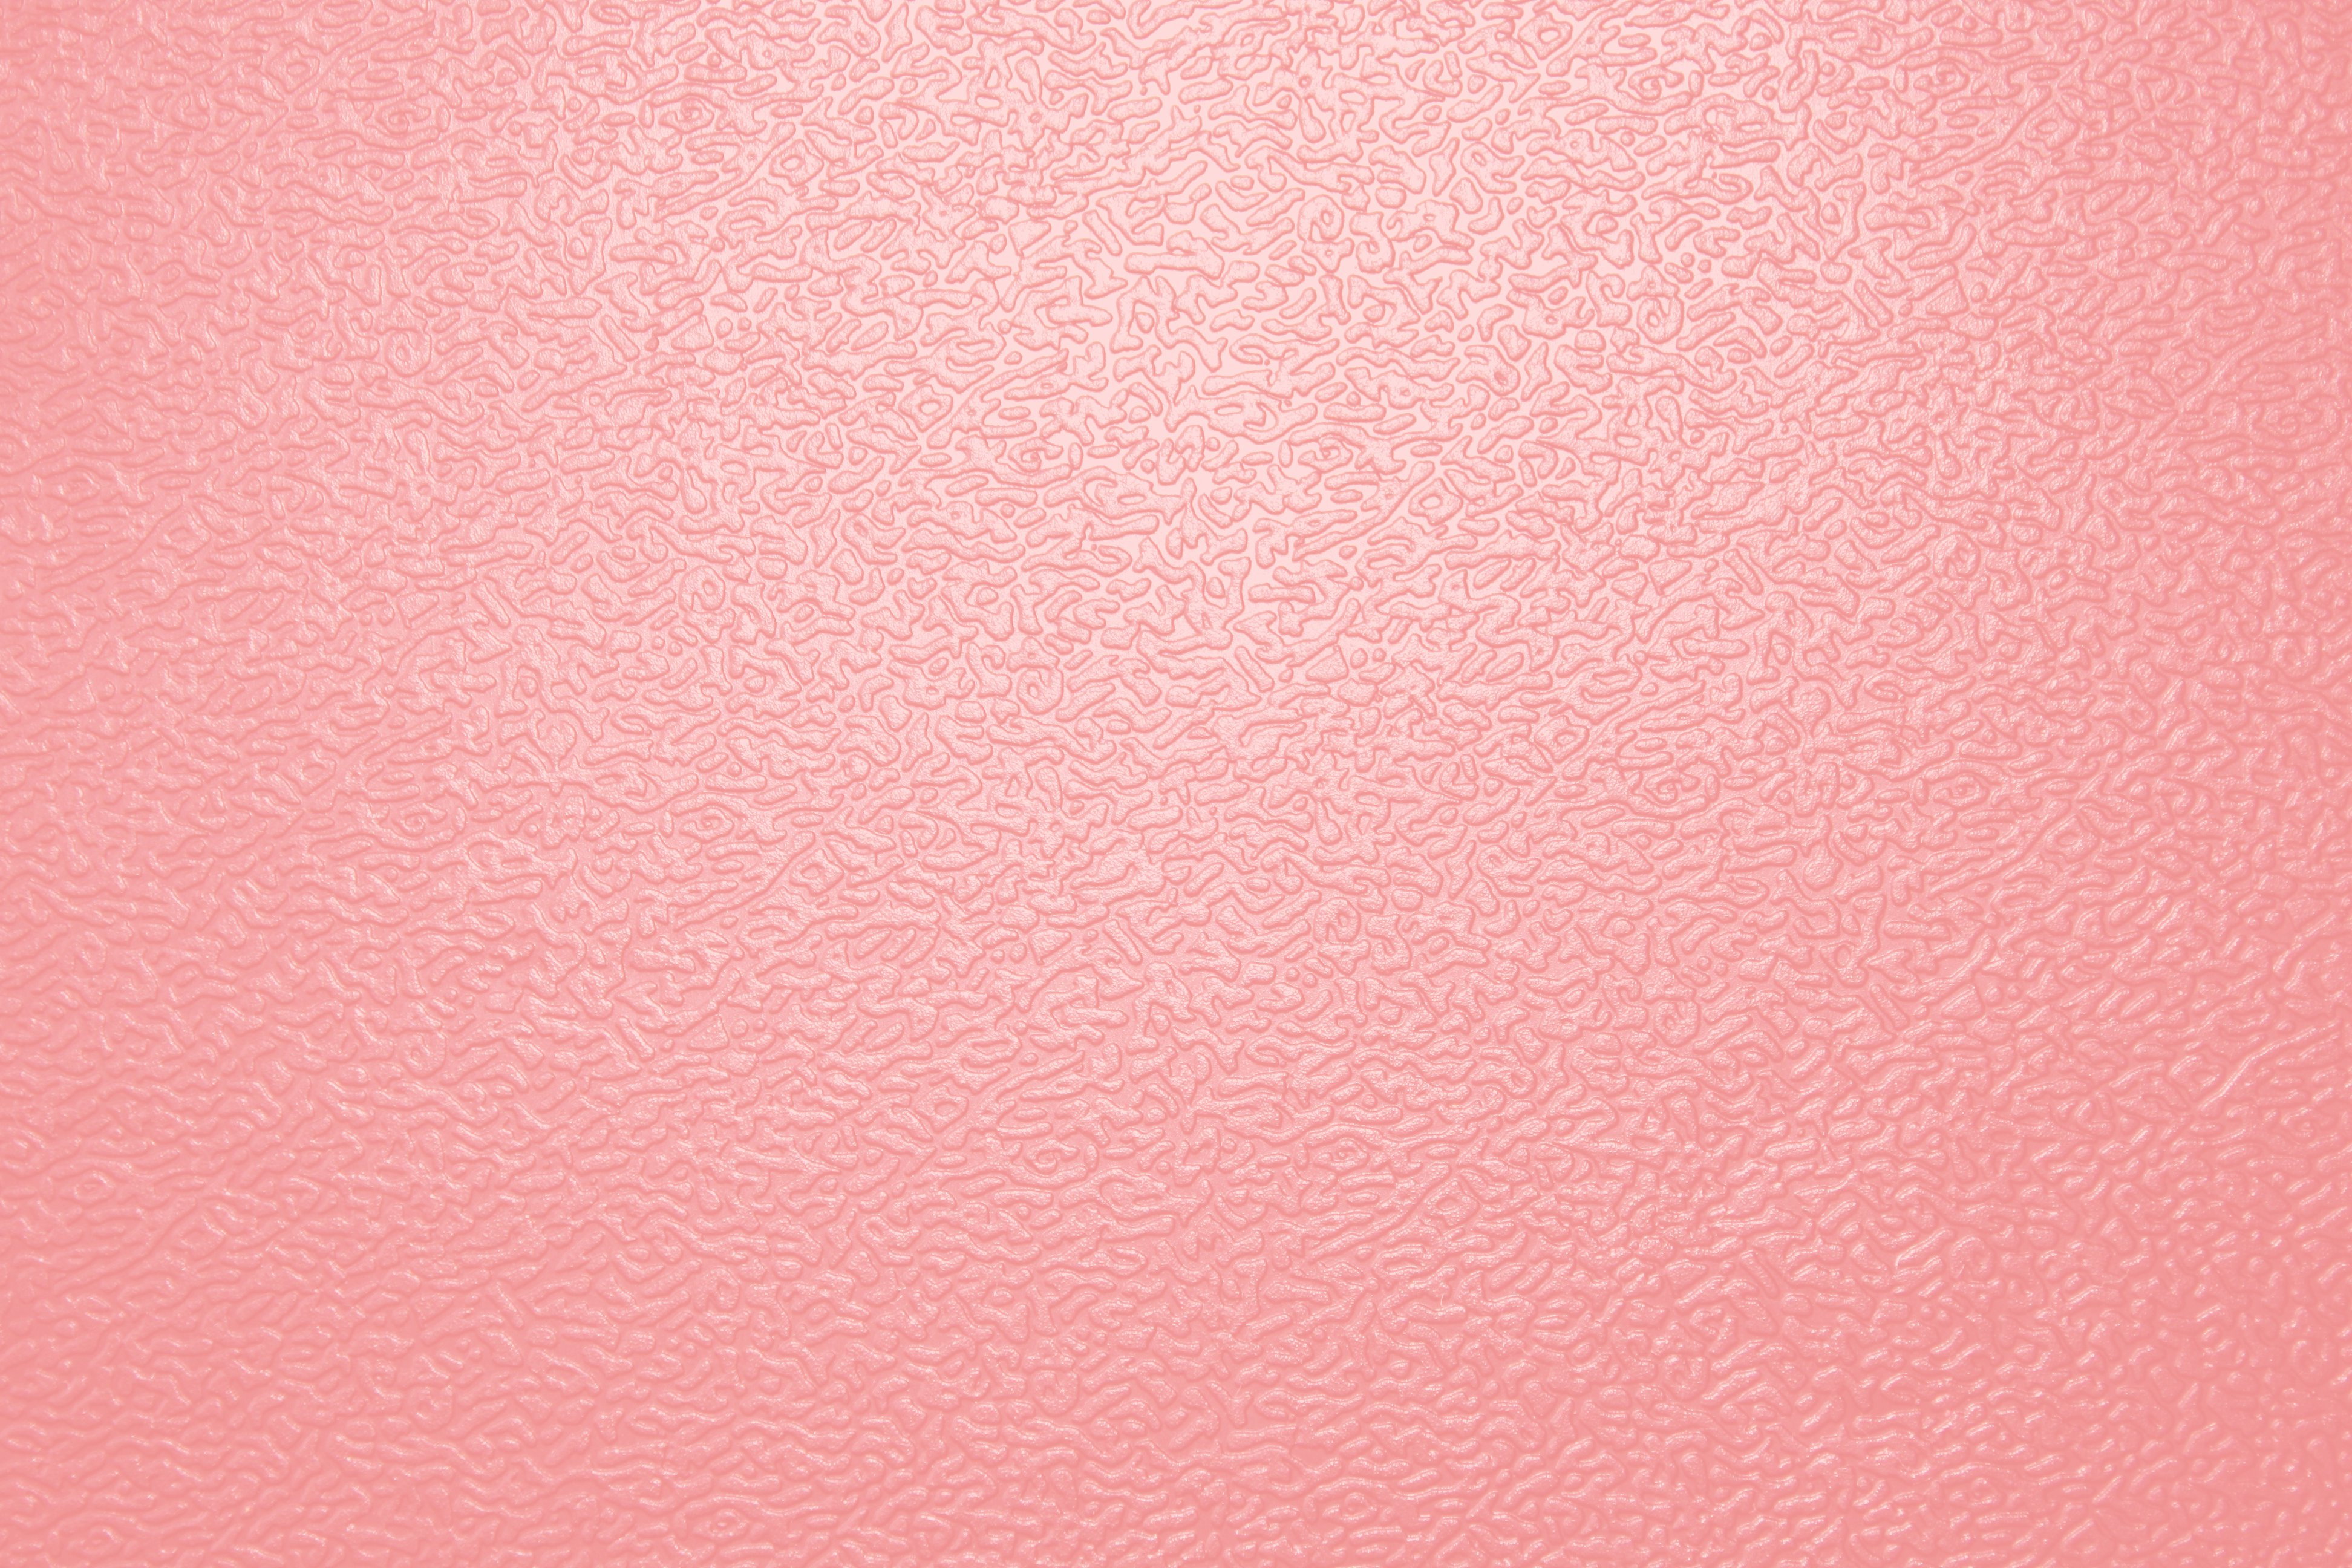 Background clipart pink.